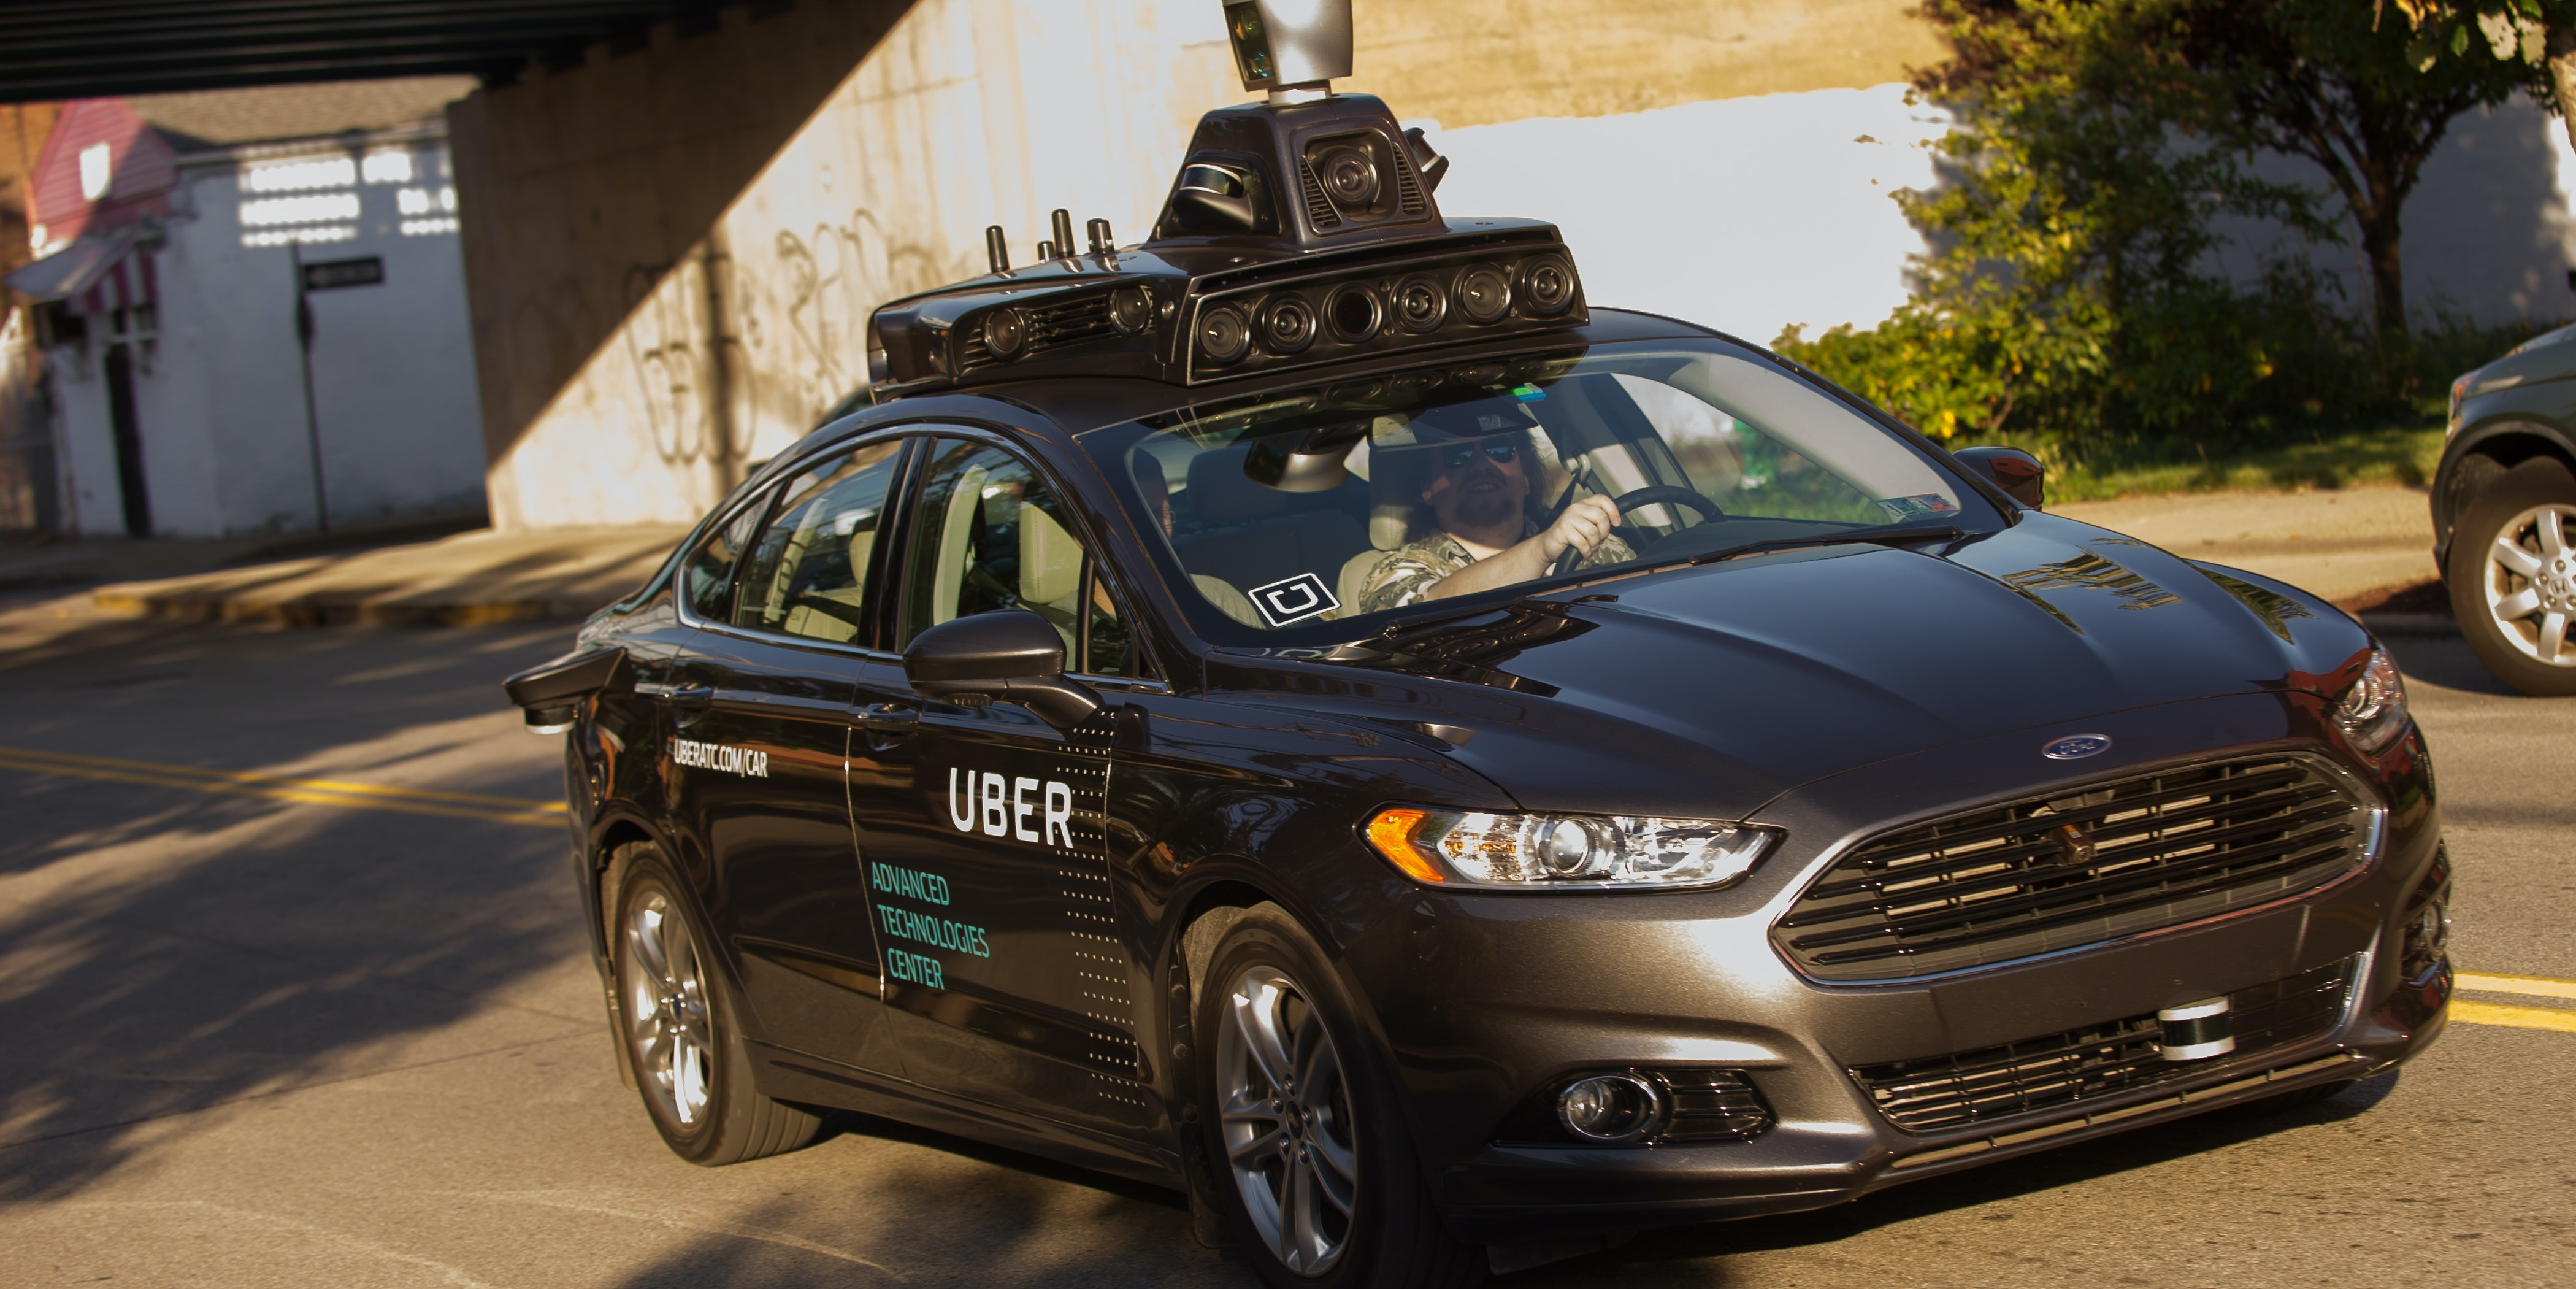 An Uber driverless Ford Fusion drives down Smallman Street on September, 22, 2016 in Pittsburgh, Pennsylvania. Uber has built its Uber Technical Center in Pittsburgh and is developing an autonomous vehicle that it hopes will be able to transport its millions of clients without the need for a driver.